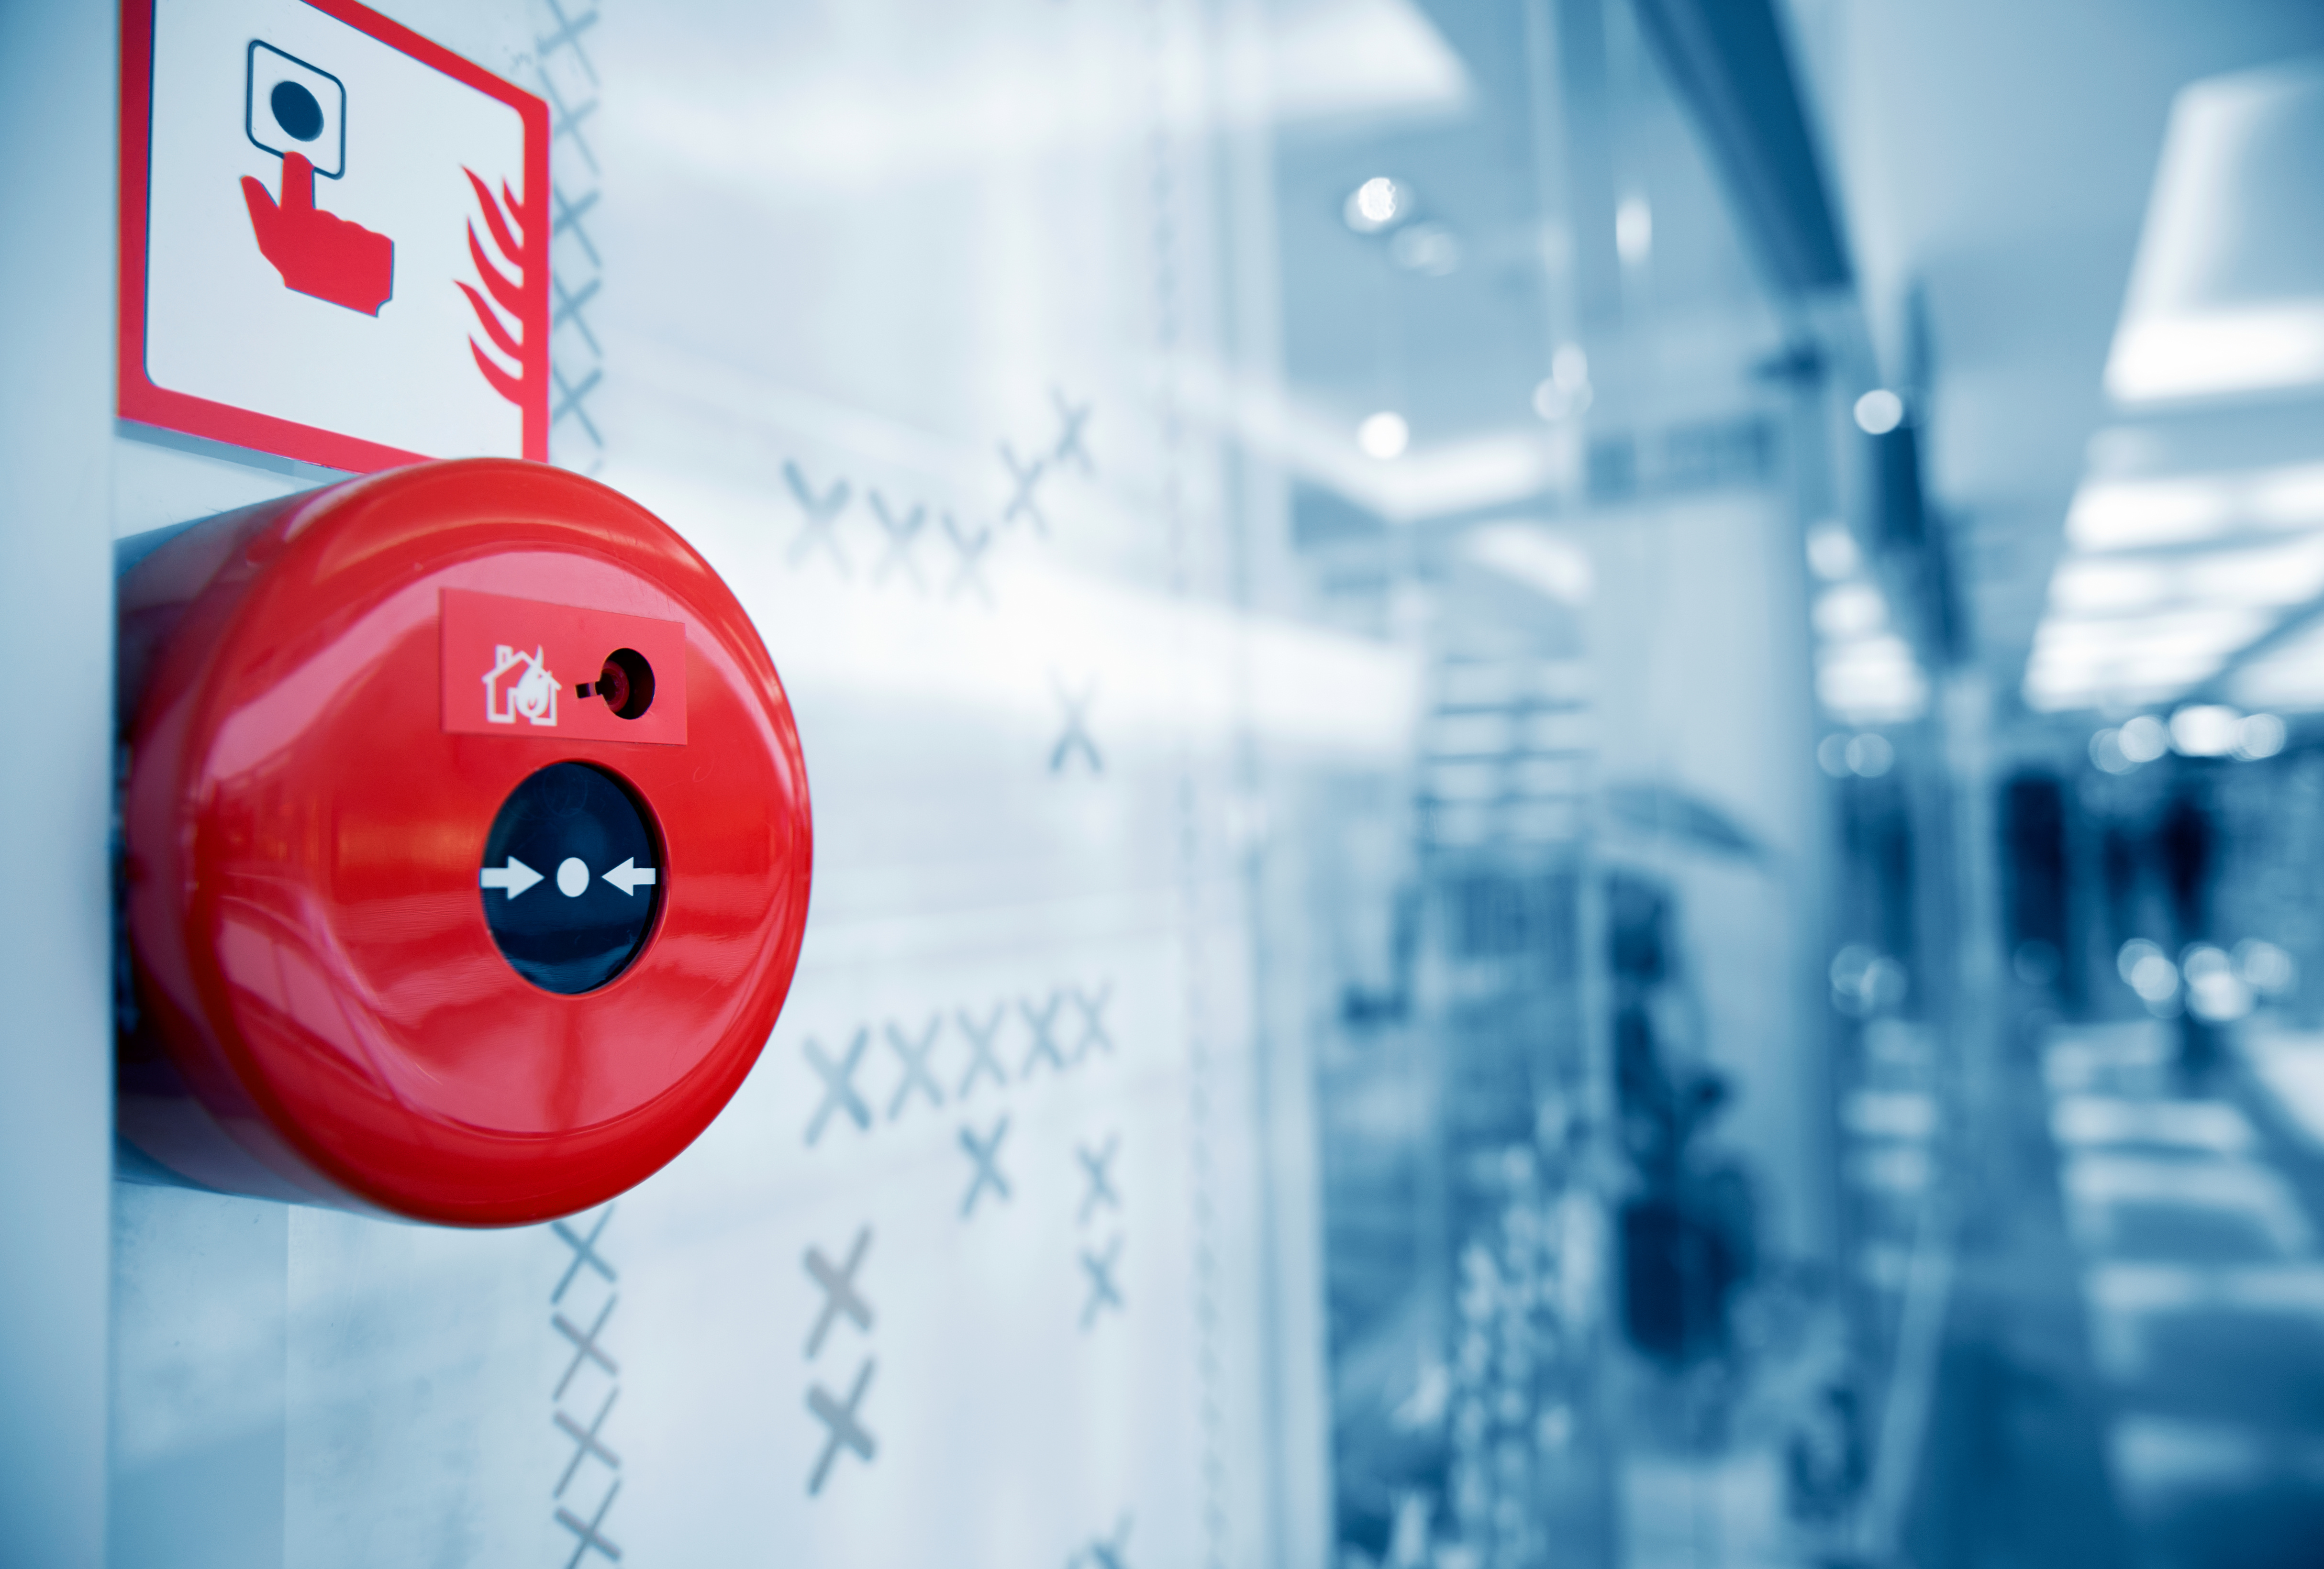 fire alarm, security, life safety